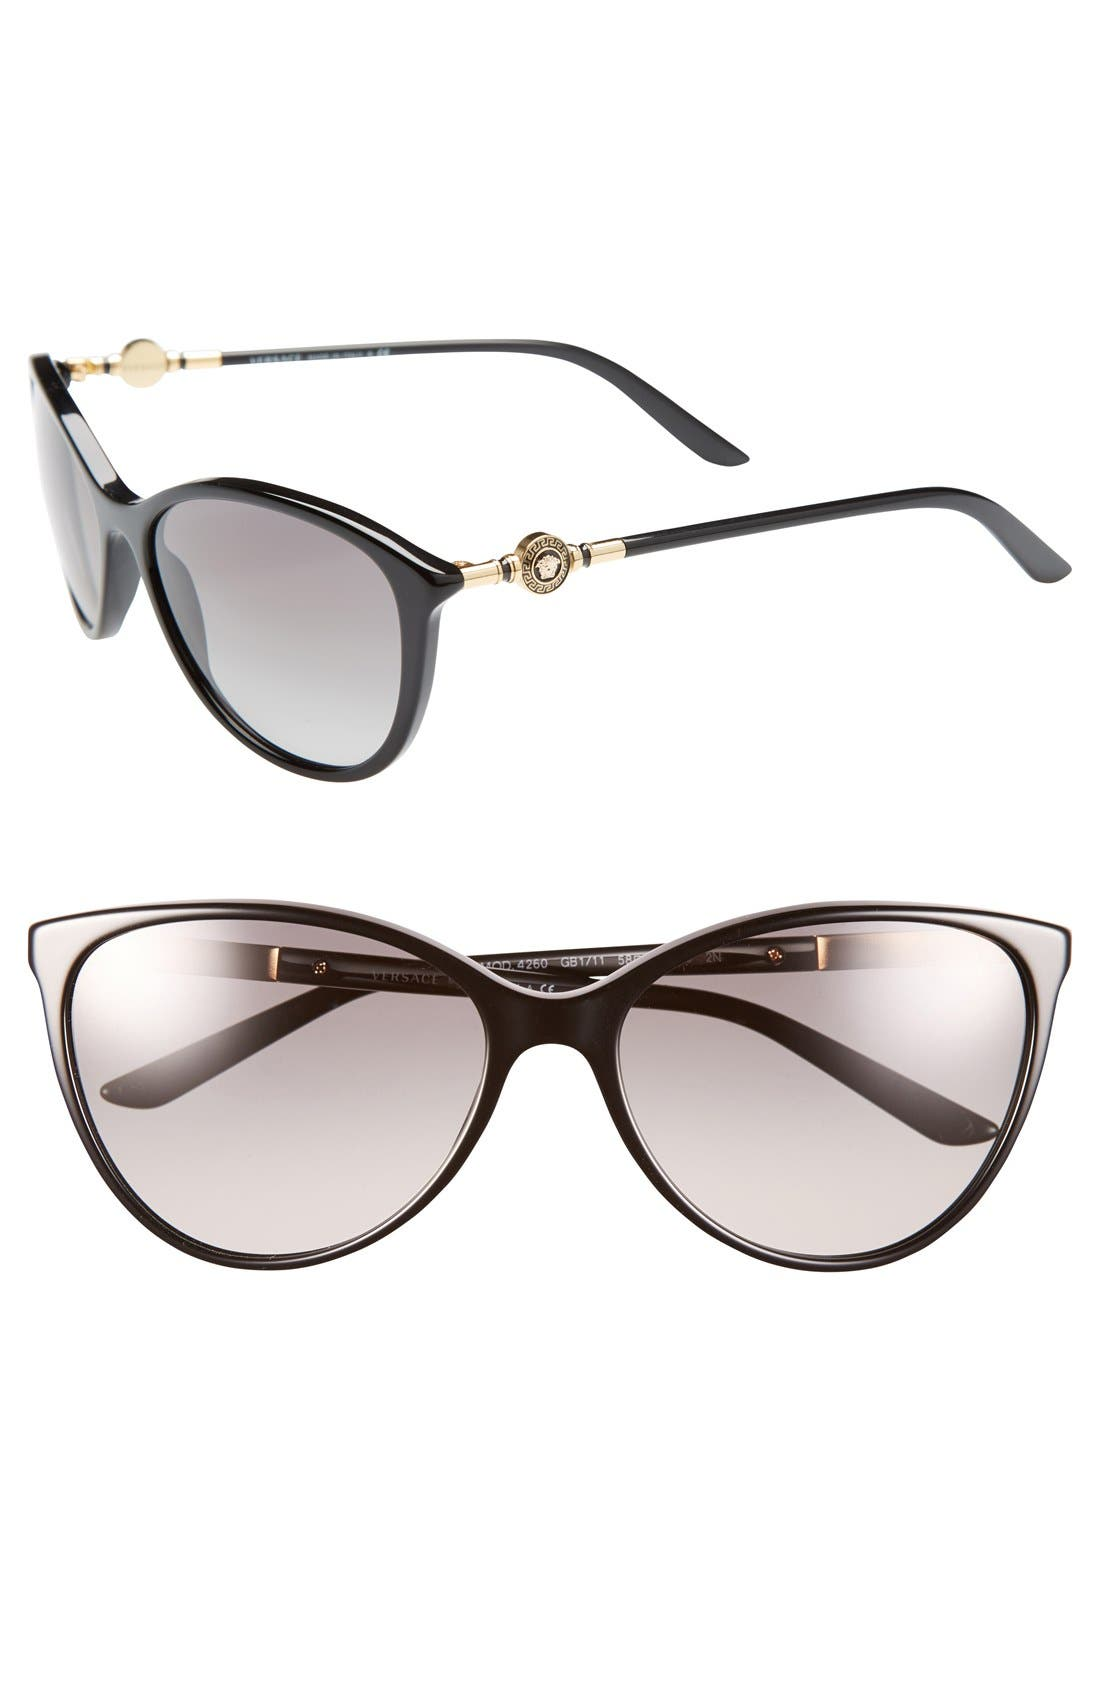 Main Image - Versace 'Glam' 57mm Medallion Temple Sunglasses